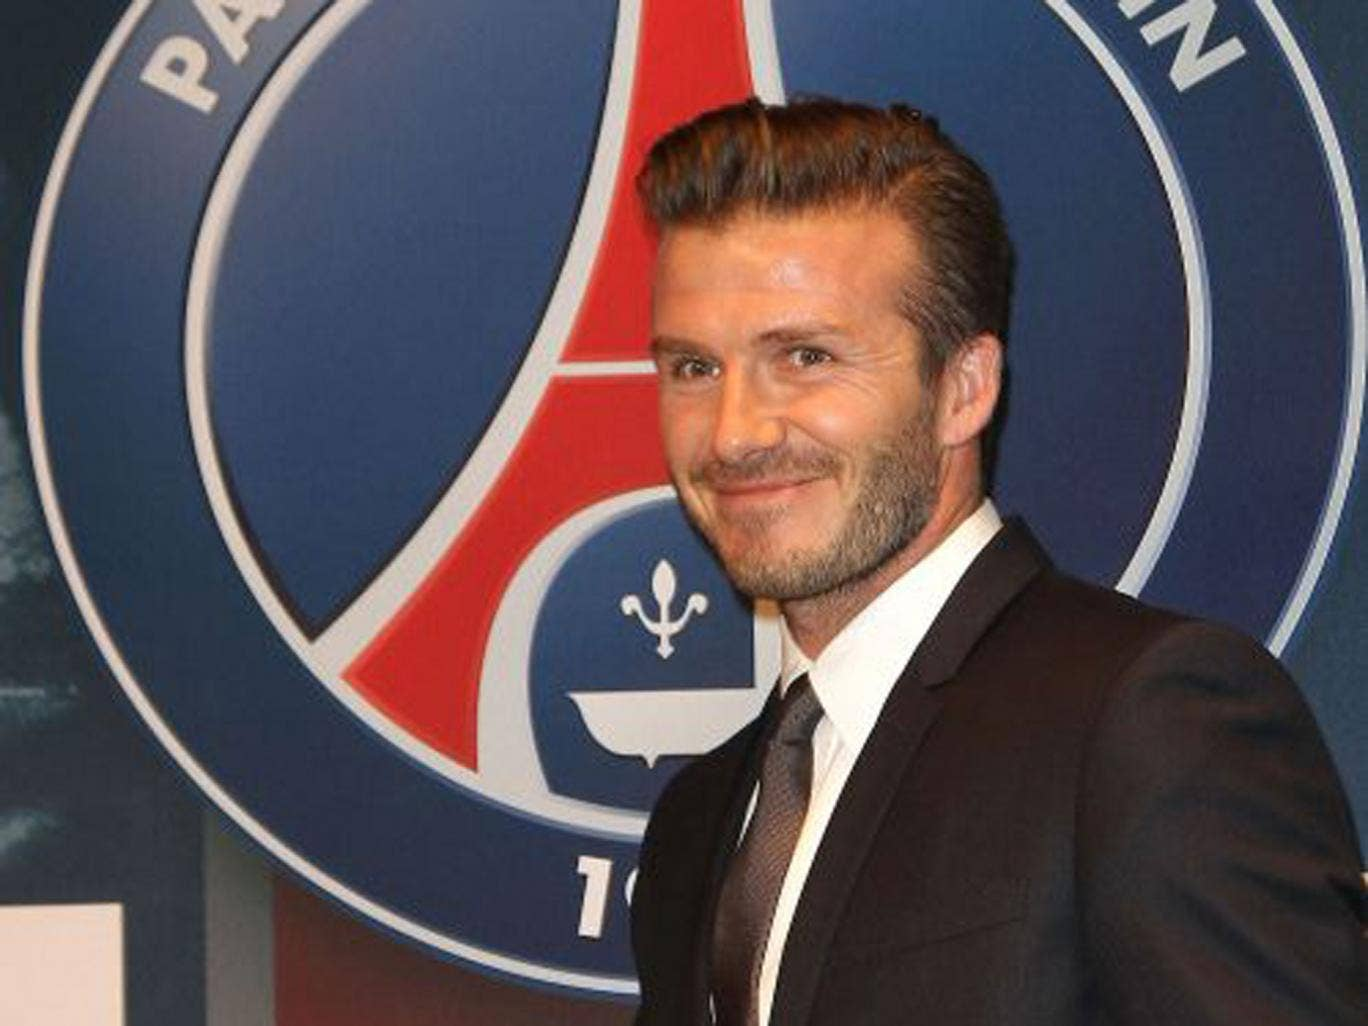 David Beckham signs on for a shift with Paris Saint-Germain